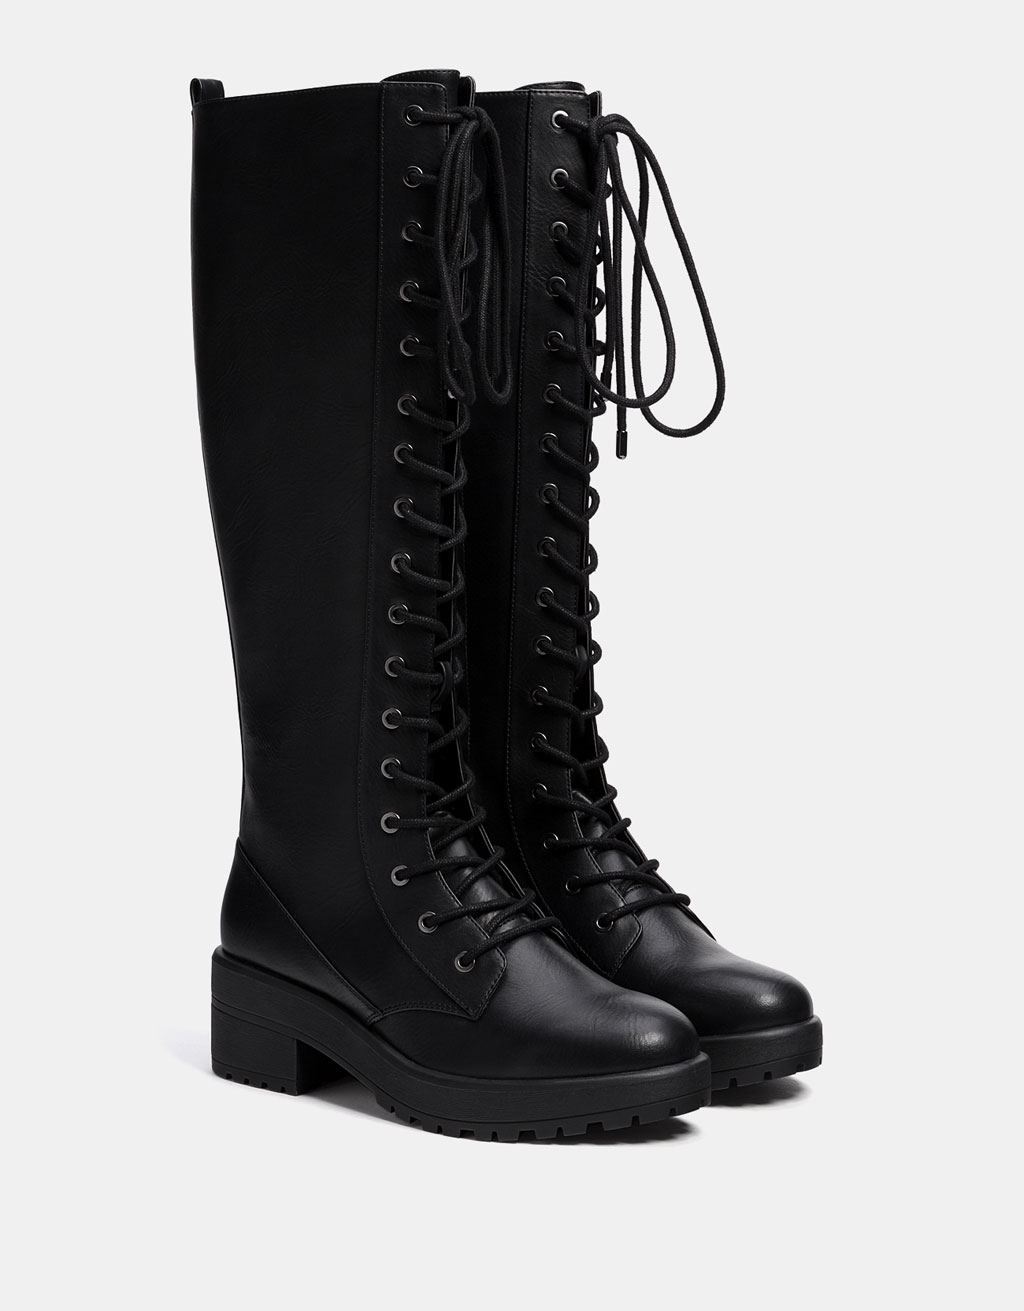 Lace-up platform tall boots